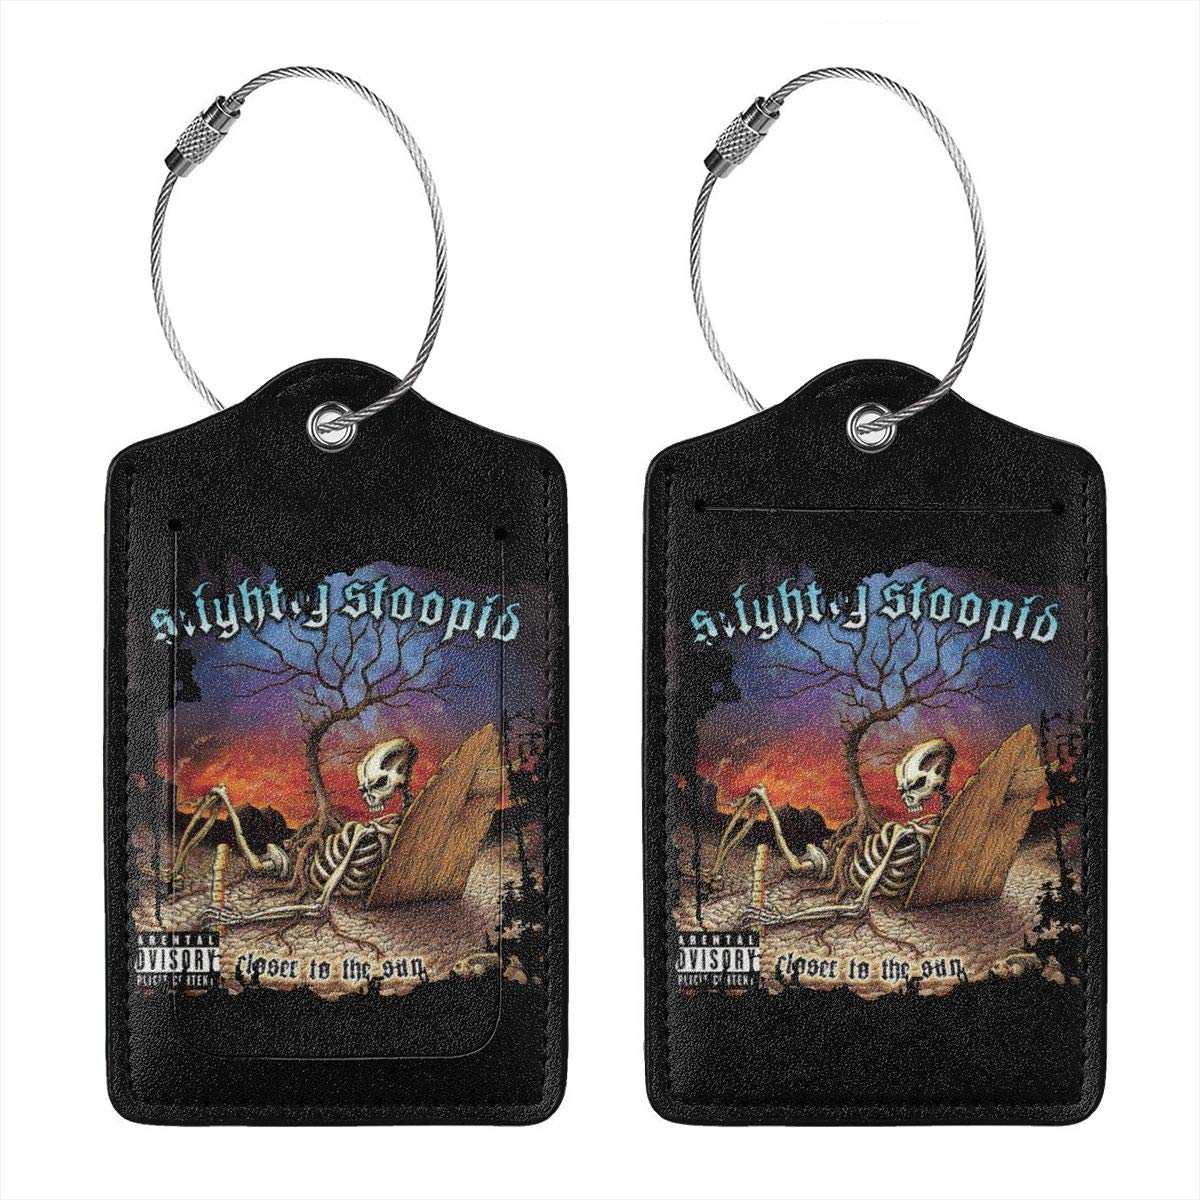 Slightly Stoopid Closer To The Sun Leather Luggage Tag Travel ID Label For Baggage Suitcase